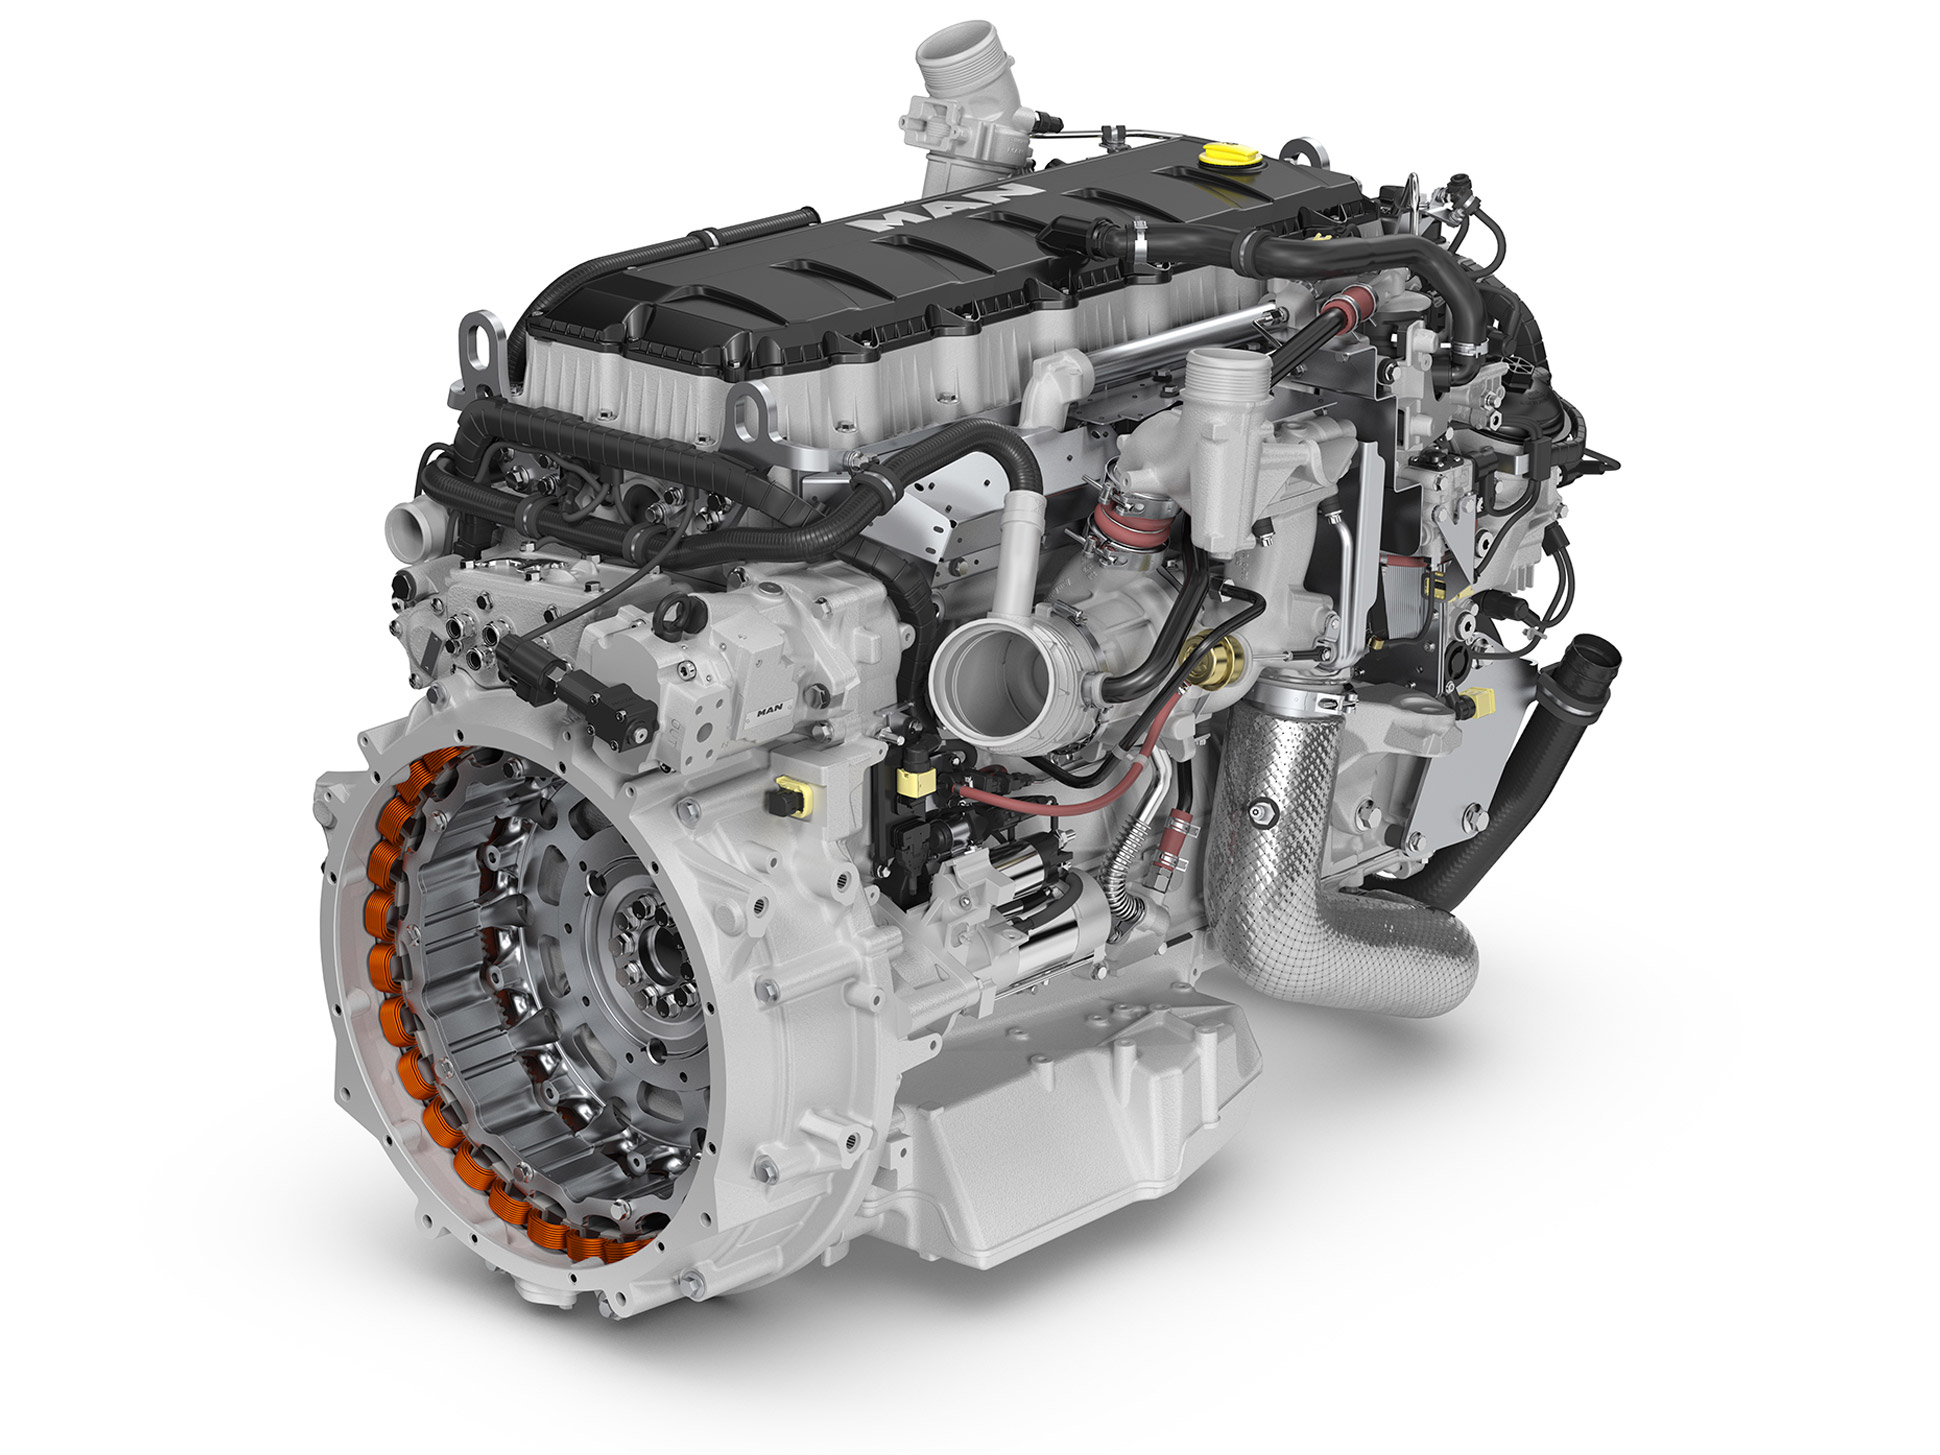 MAN: New engines for TGX and TGS – Iepieleaks